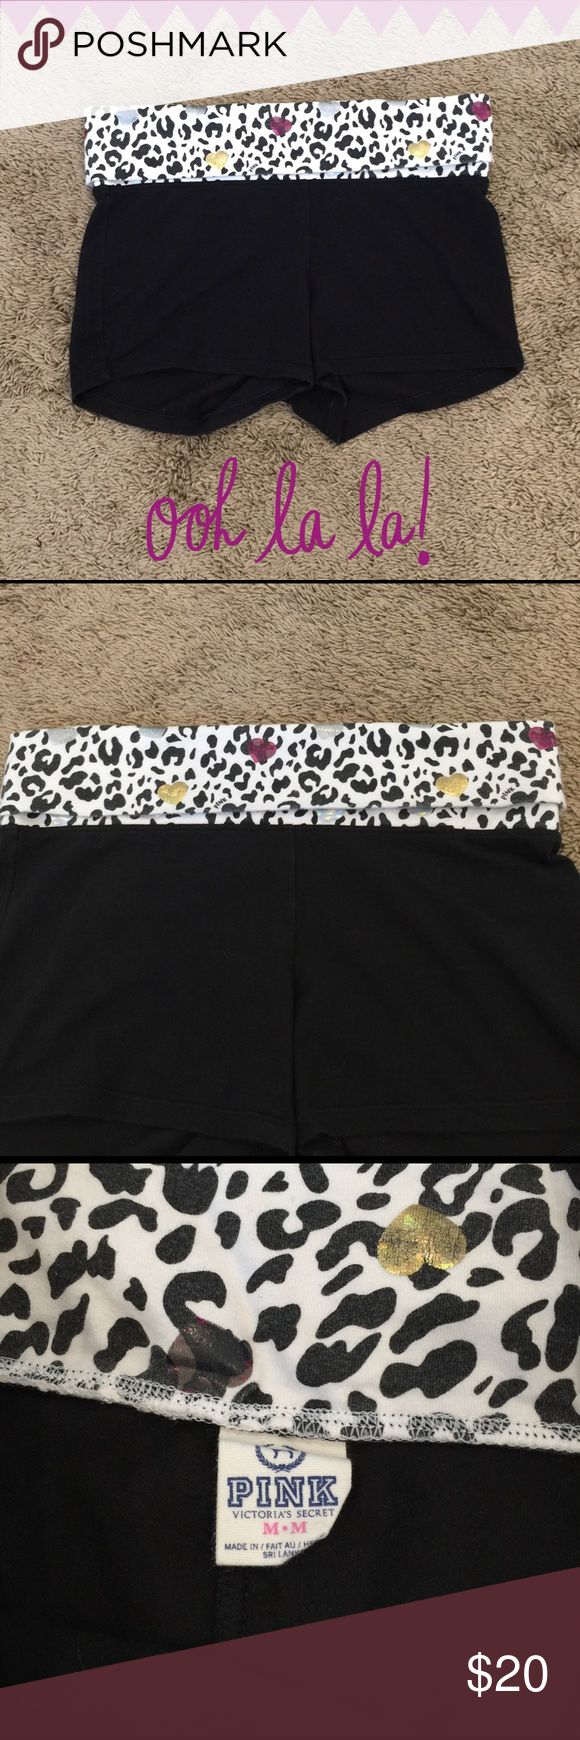 VS Pink workout shorts with fold over waist band Super cute Victoria's Secret Pi...